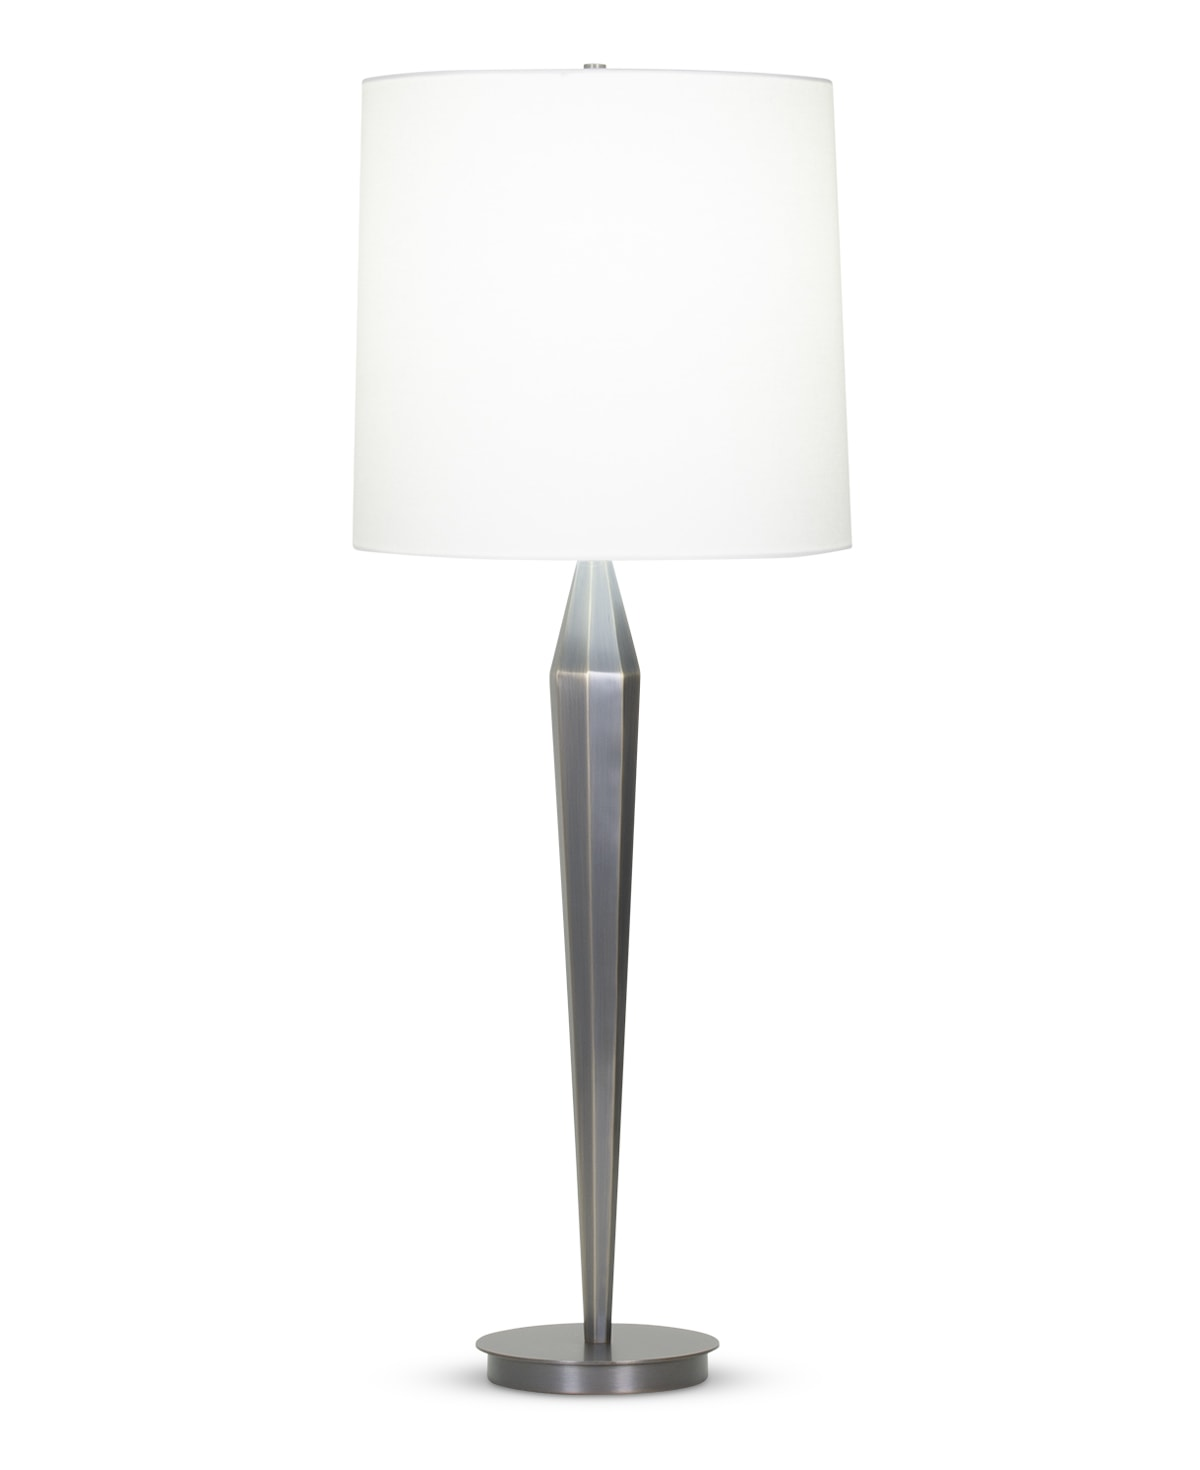 FlowDecor Aiden Table Lamp in metal with bronze finish and off-white linen tapered drum shade (# 4090)